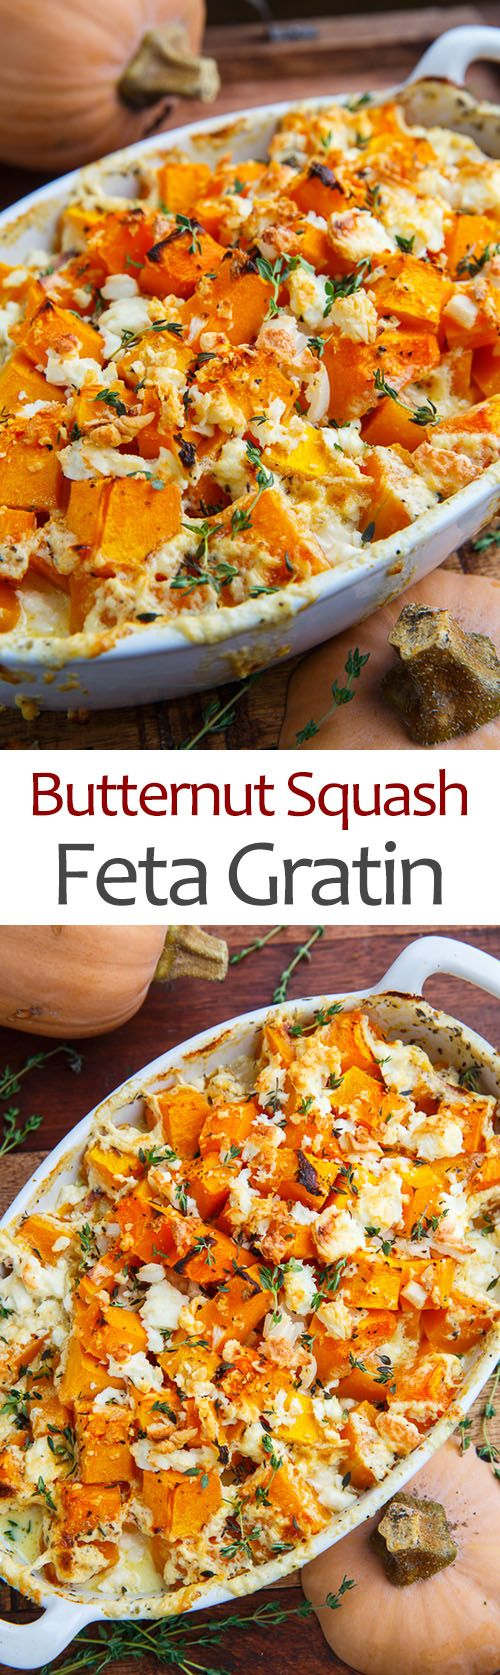 Butternut Squash and Feta Gratin                                                                                                                                                                                 More